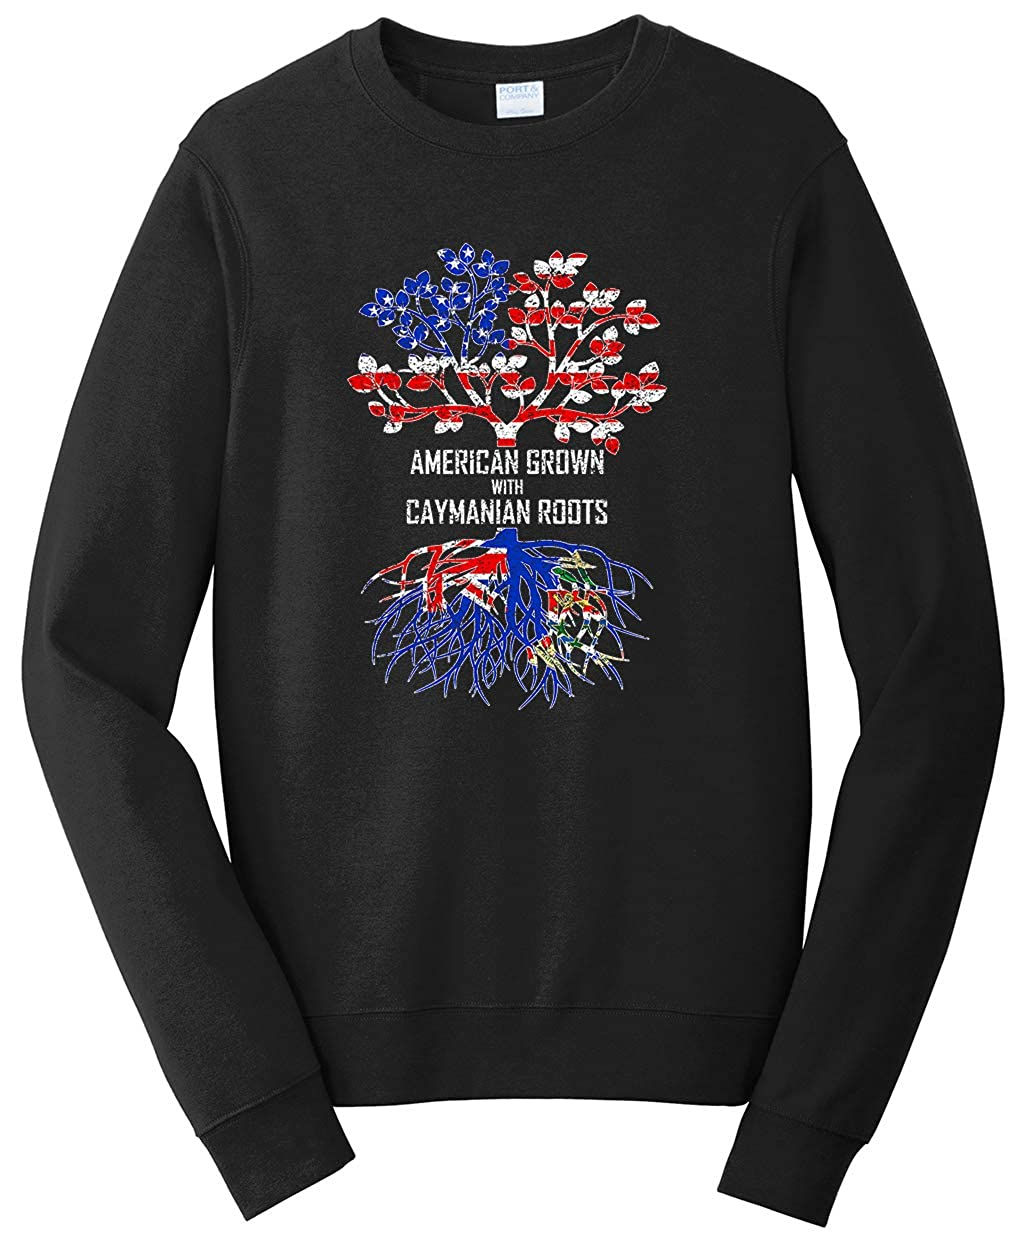 Tenacitee Unisex American Grown with Caymanian Roots Sweatshirt